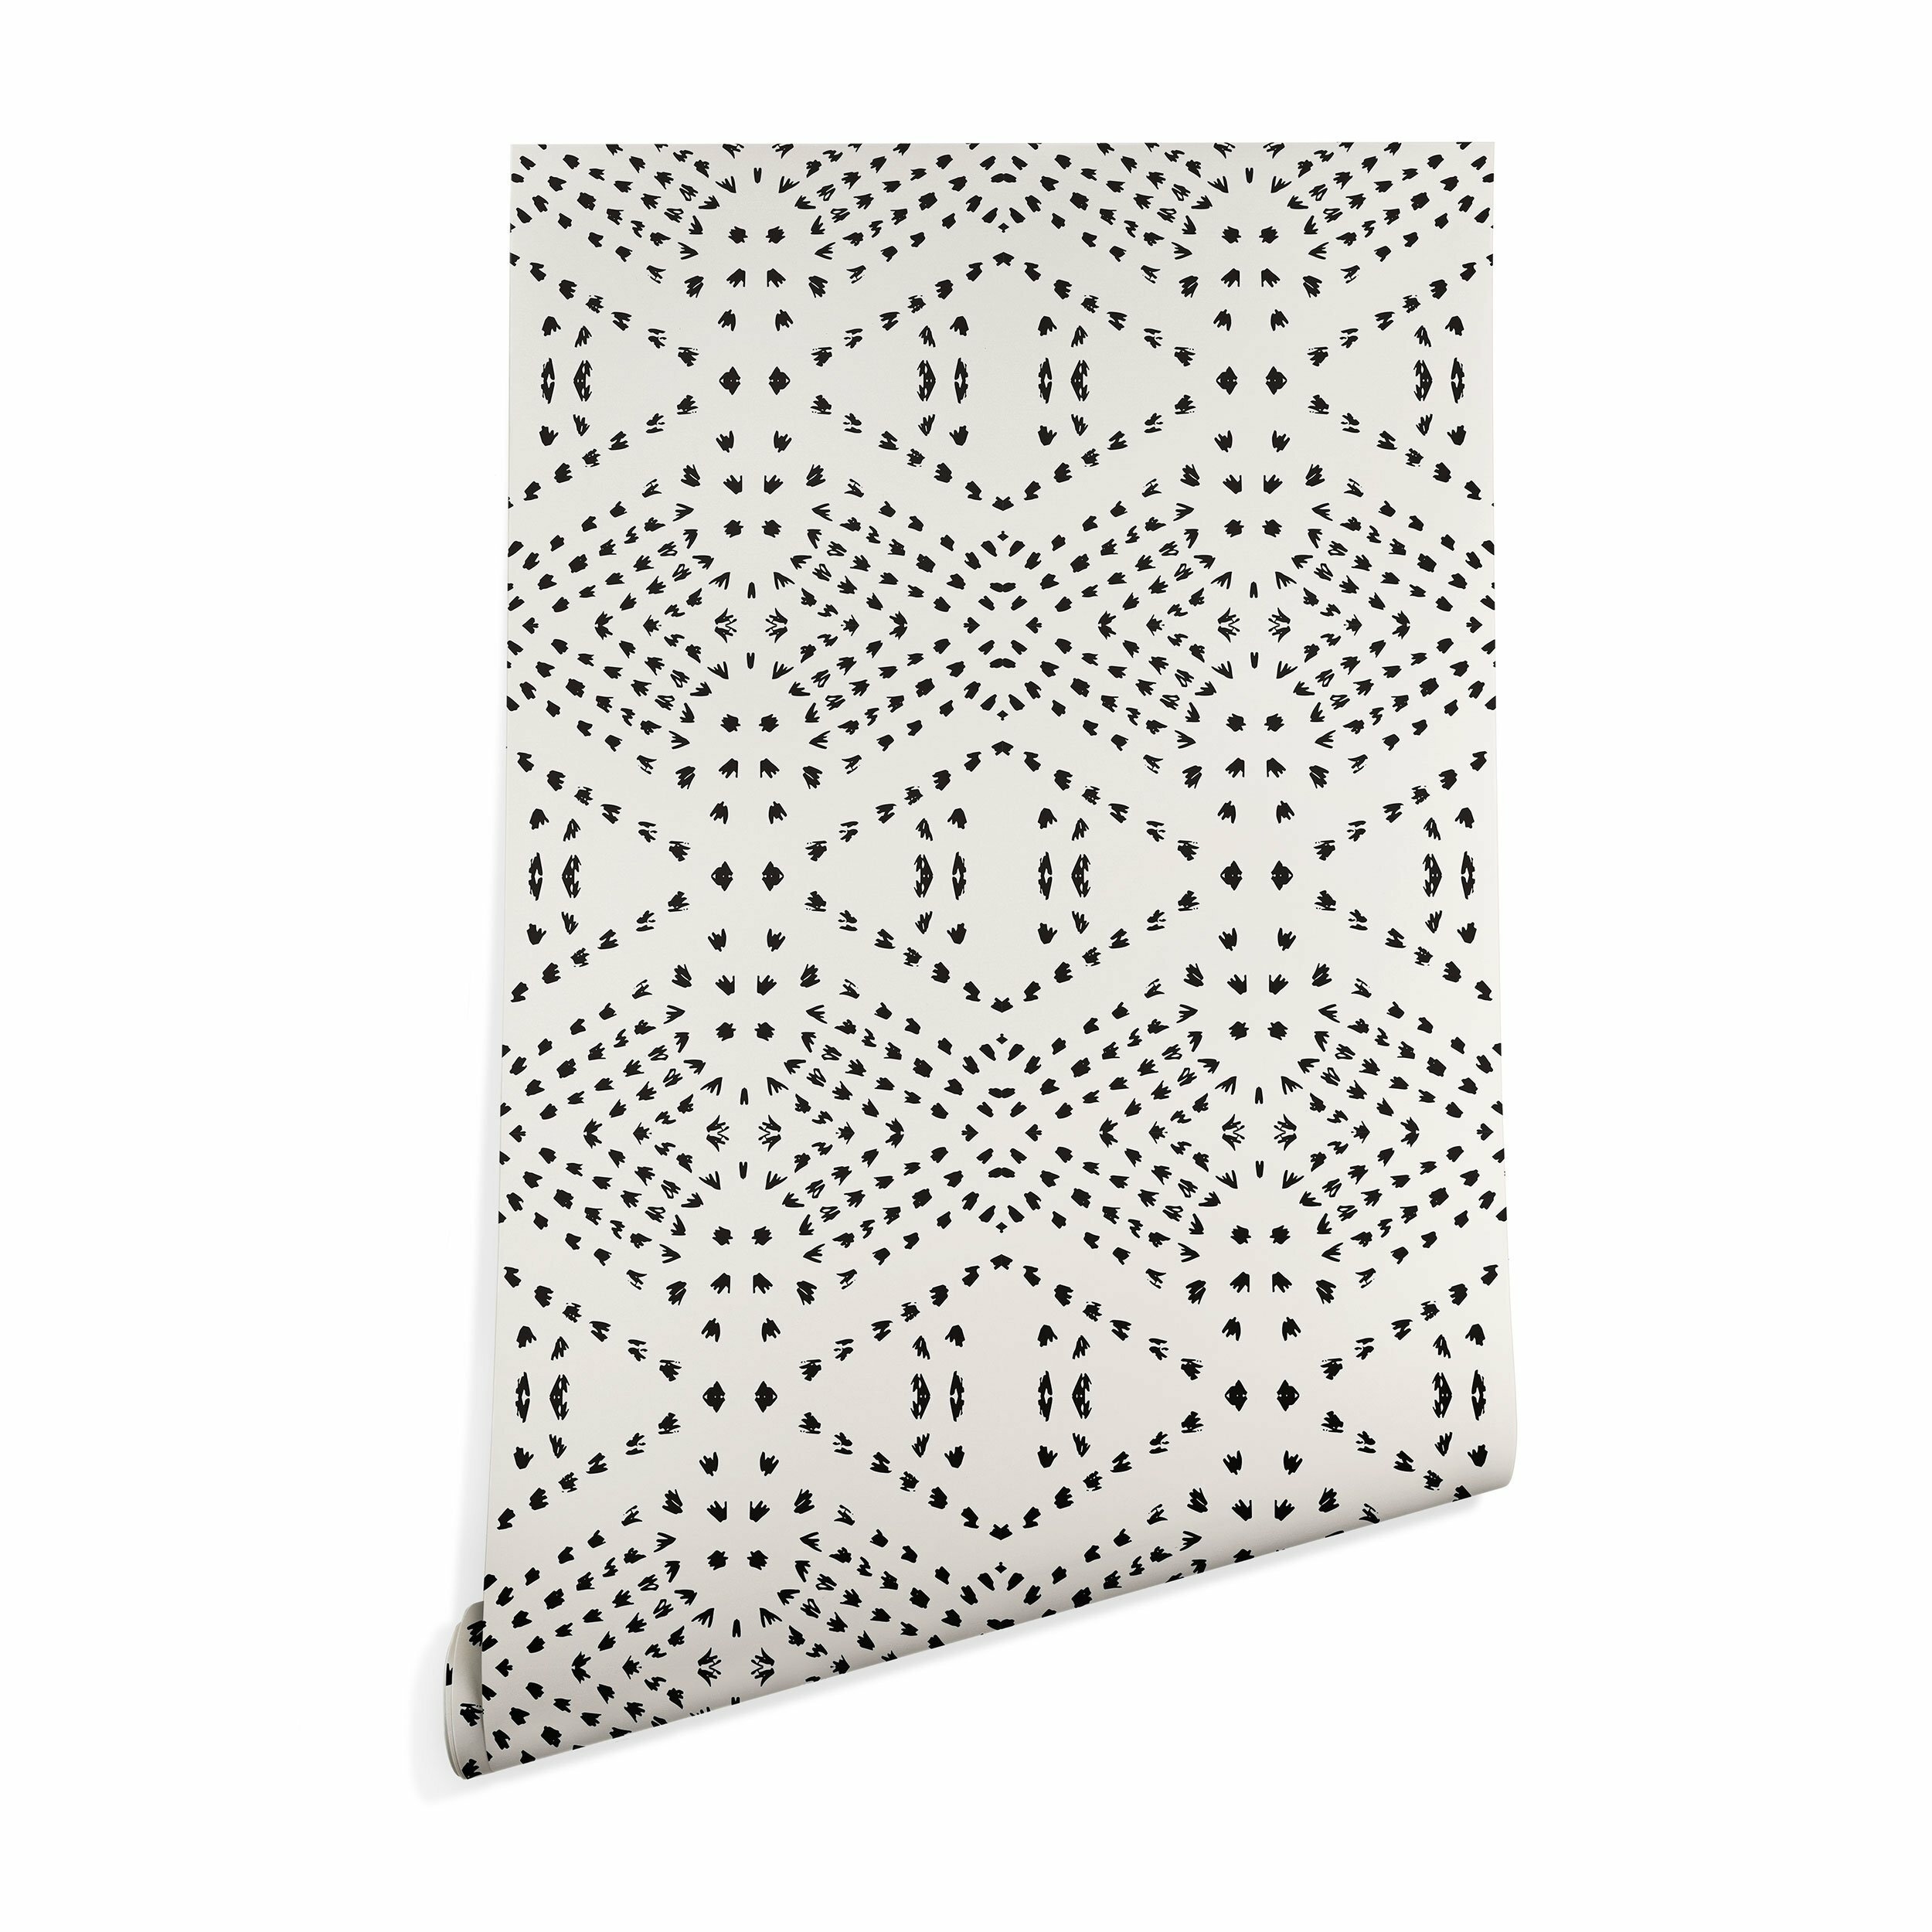 Tile Matte Smooth Peel And Stick Wallpaper Roll Reviews Allmodern